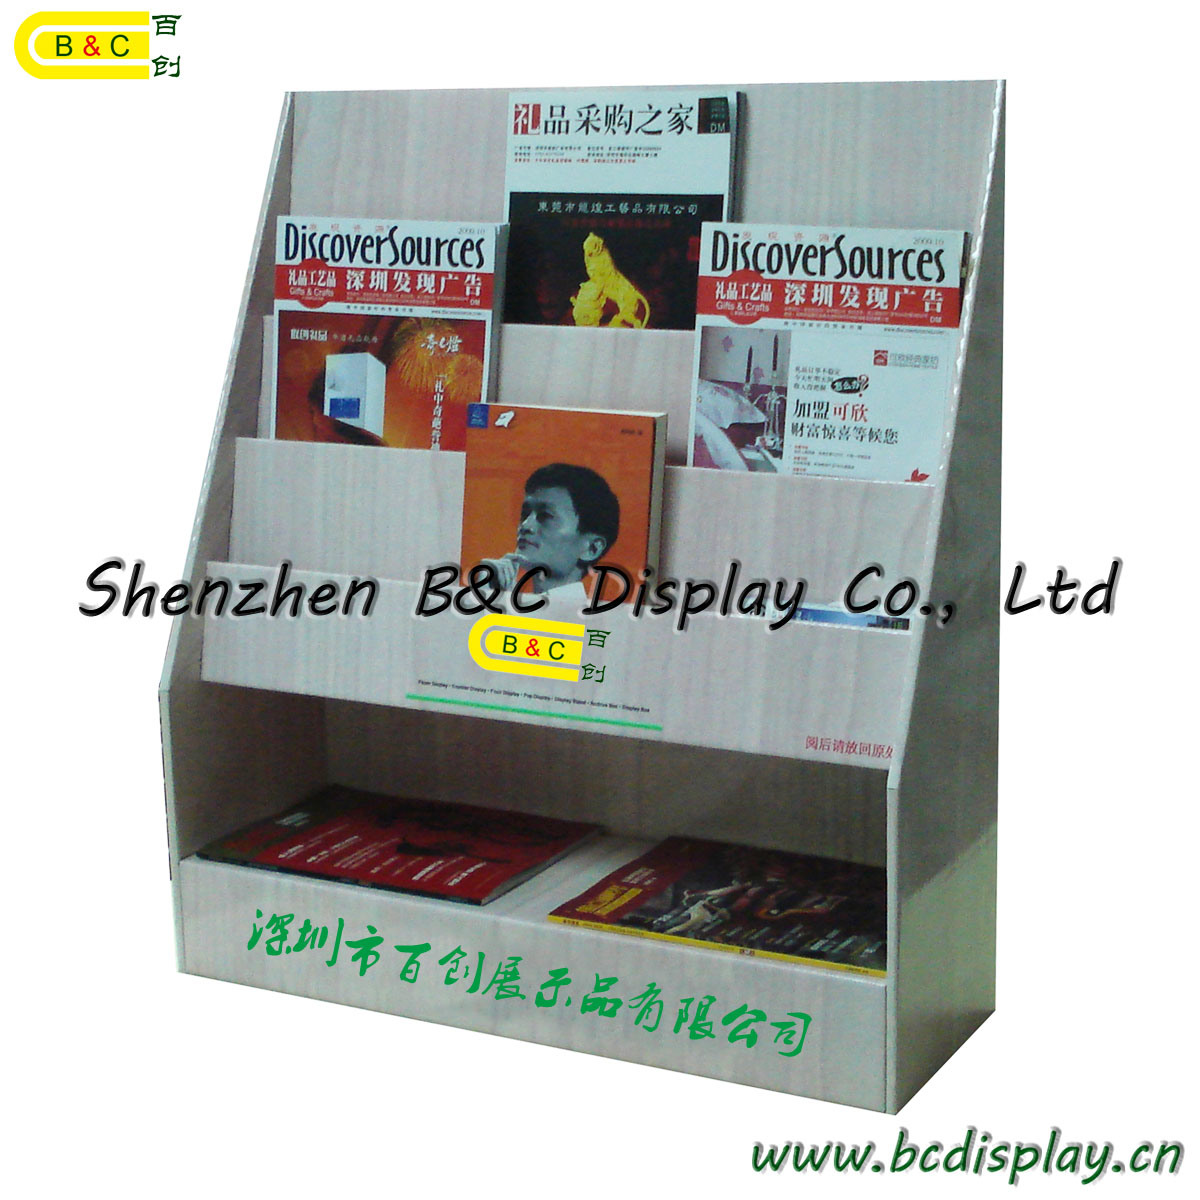 Customized Counter Display, Desk Paper Display, Candy Cardboard Display Stand, Corrugated Display, POS Display, Carton Display, Tiered Shelf Display (B&C-D005)